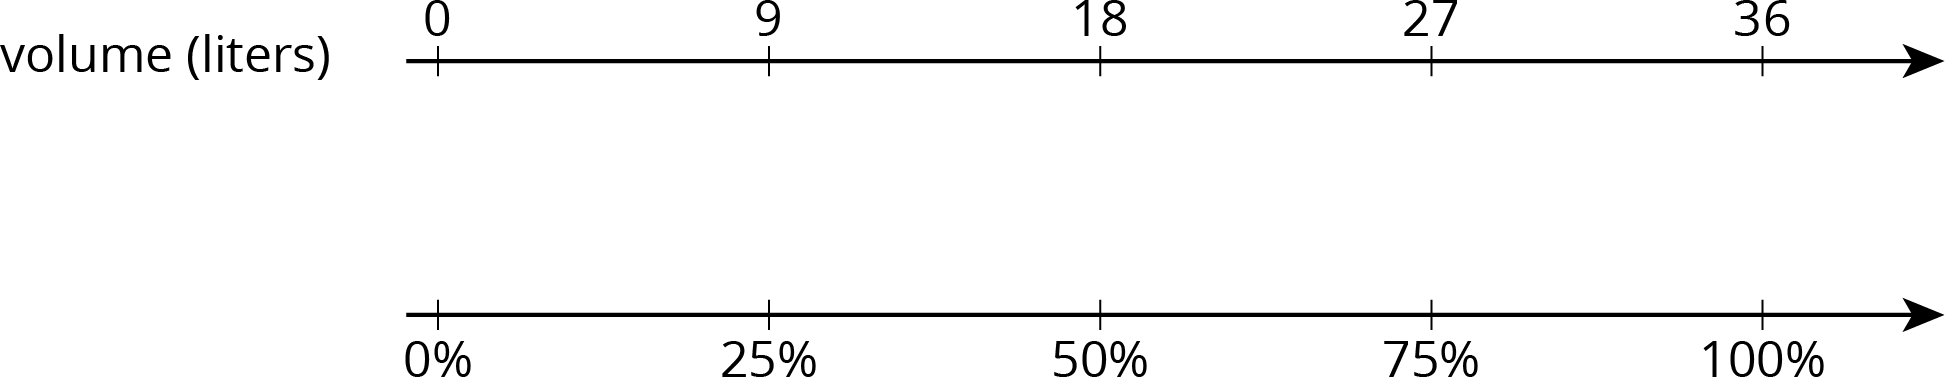 "A double number line with 5 evenly spaced tick marks. The top number line is labeled ""volume, in liters"" and starting with the first tick mark, 0, 9, 18, 27, and 36 are labeled. The bottom number line is not labeled and starting with the first tick mark 0, 25 percent, 50 percent, 75 percent, and 100 percent are labeled."